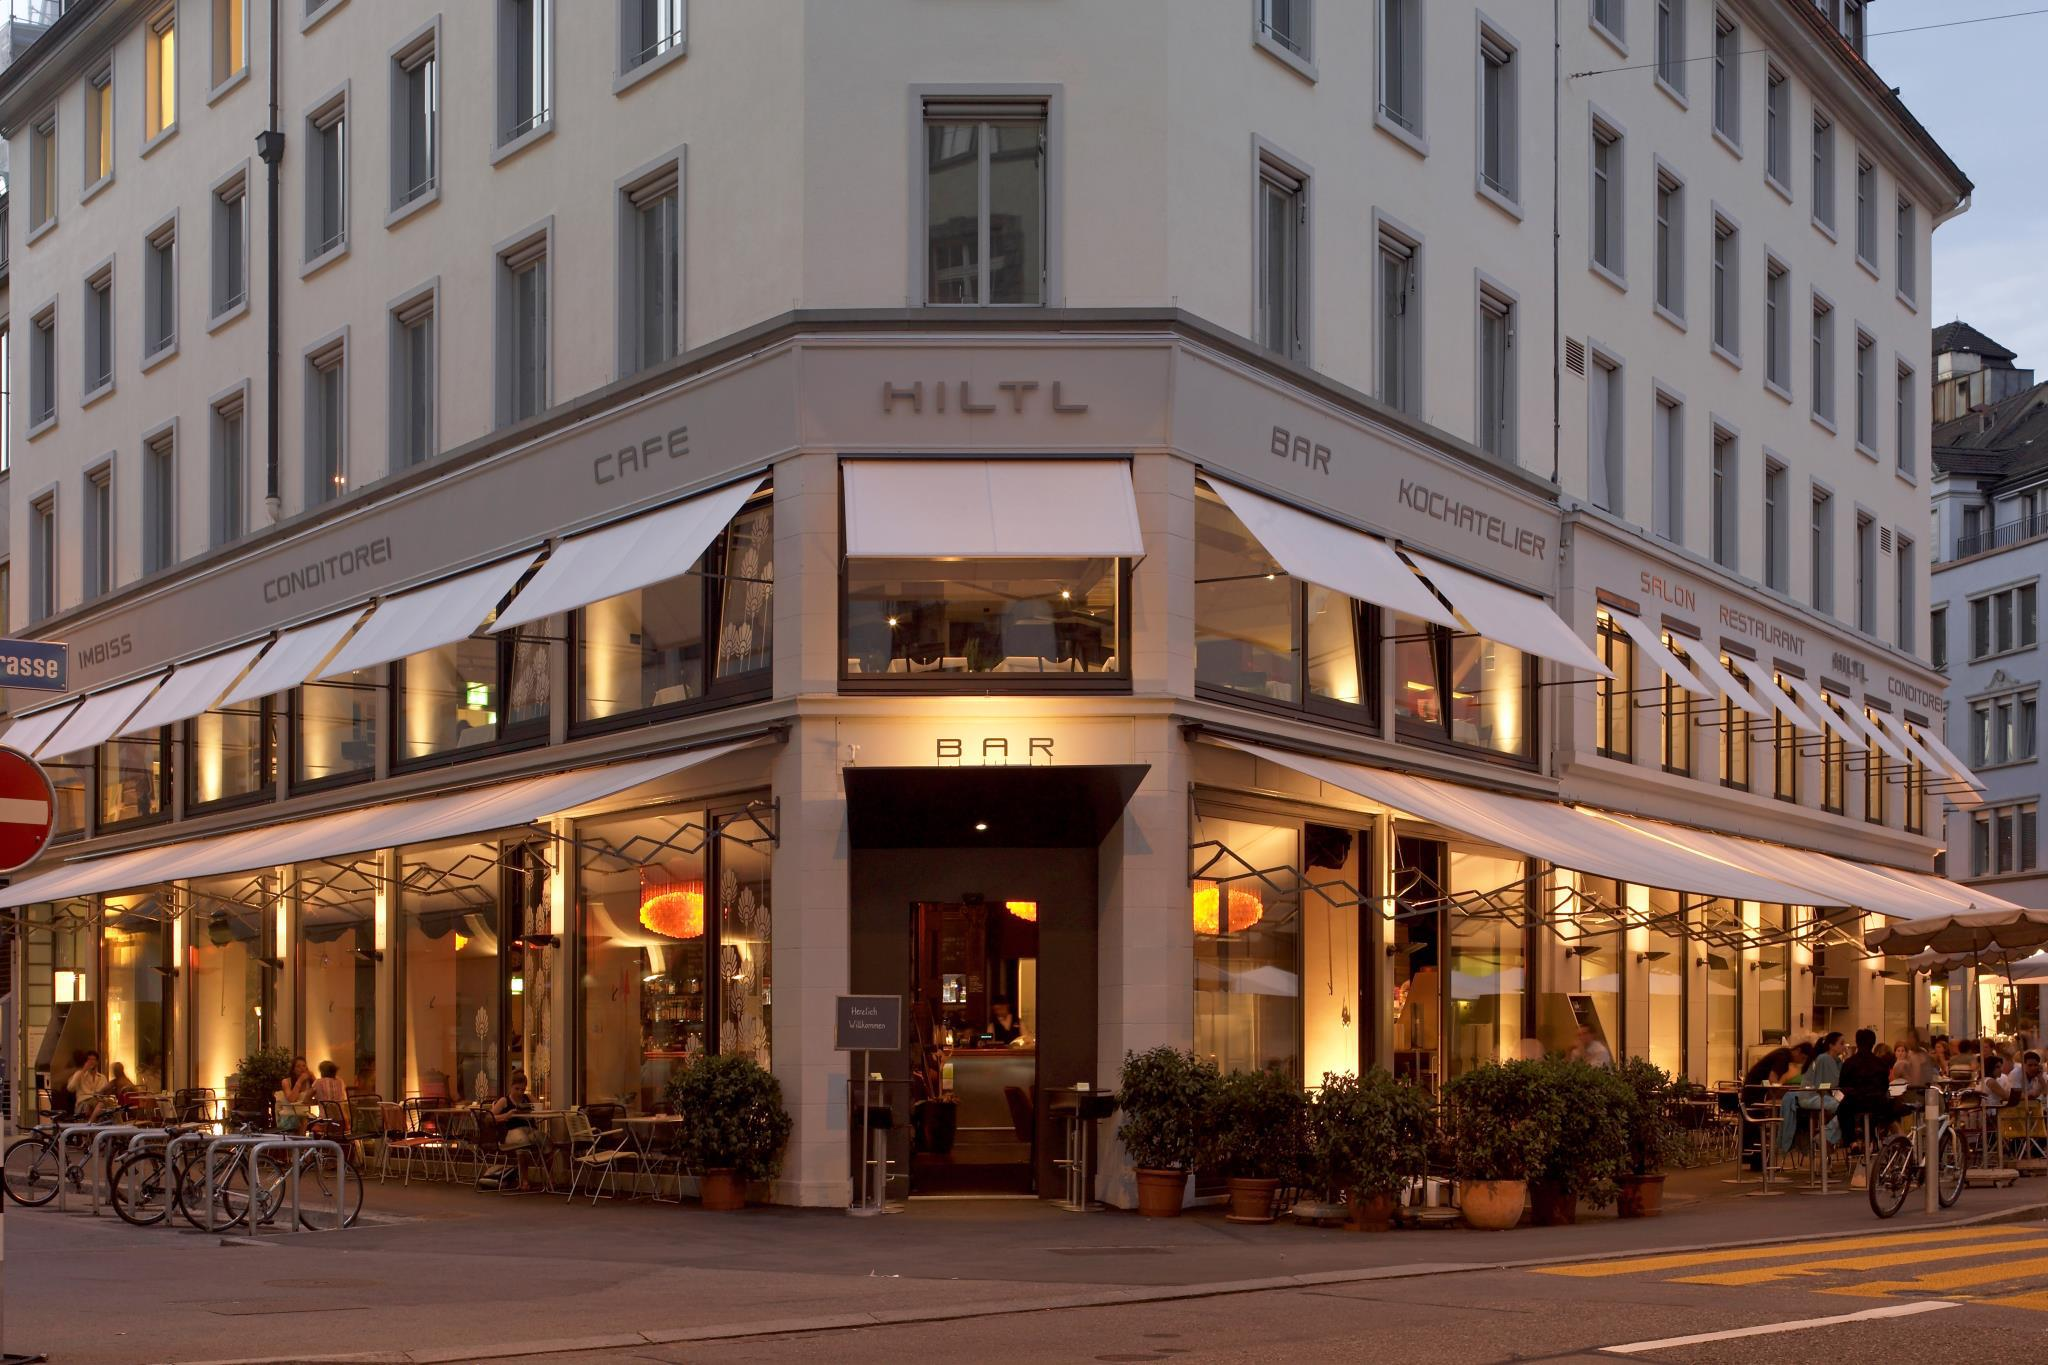 Albanische Küche Zürich A Luxury Swiss City Break And The Zest Of Zurich